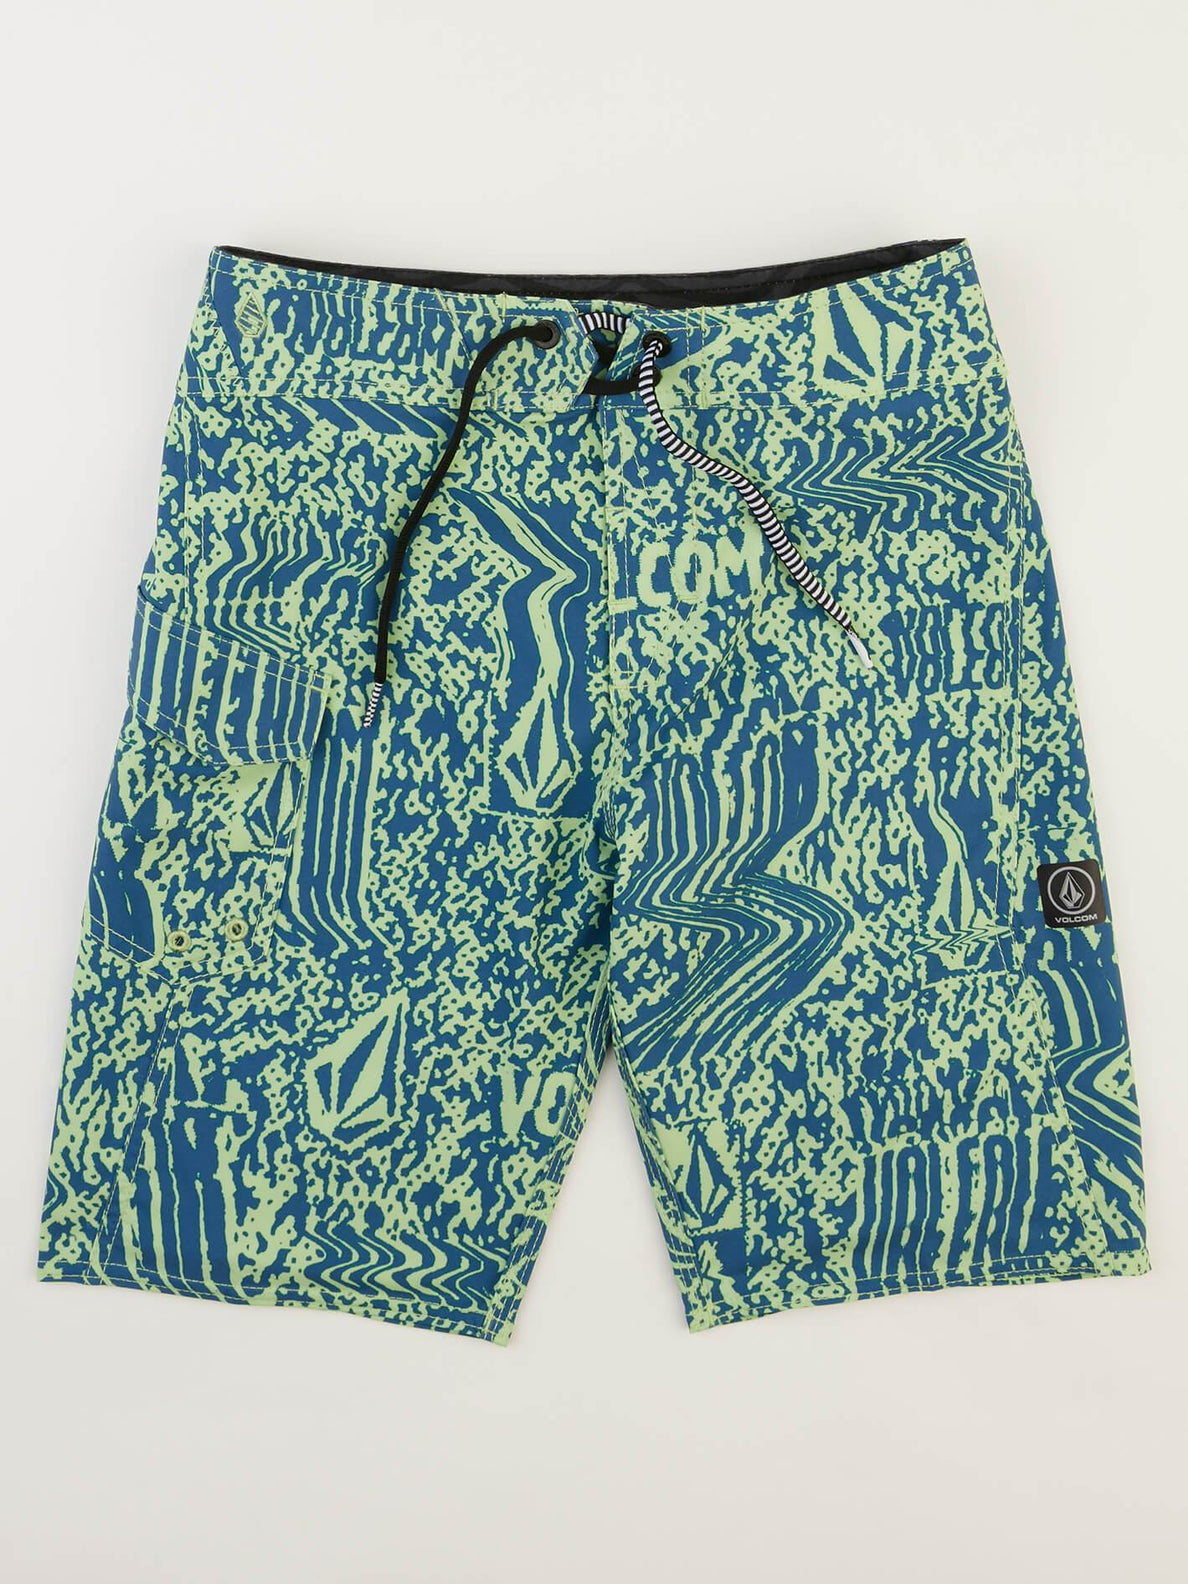 Big Boys Logo Plasm Mod Boardshorts In Strobe Green, Front View